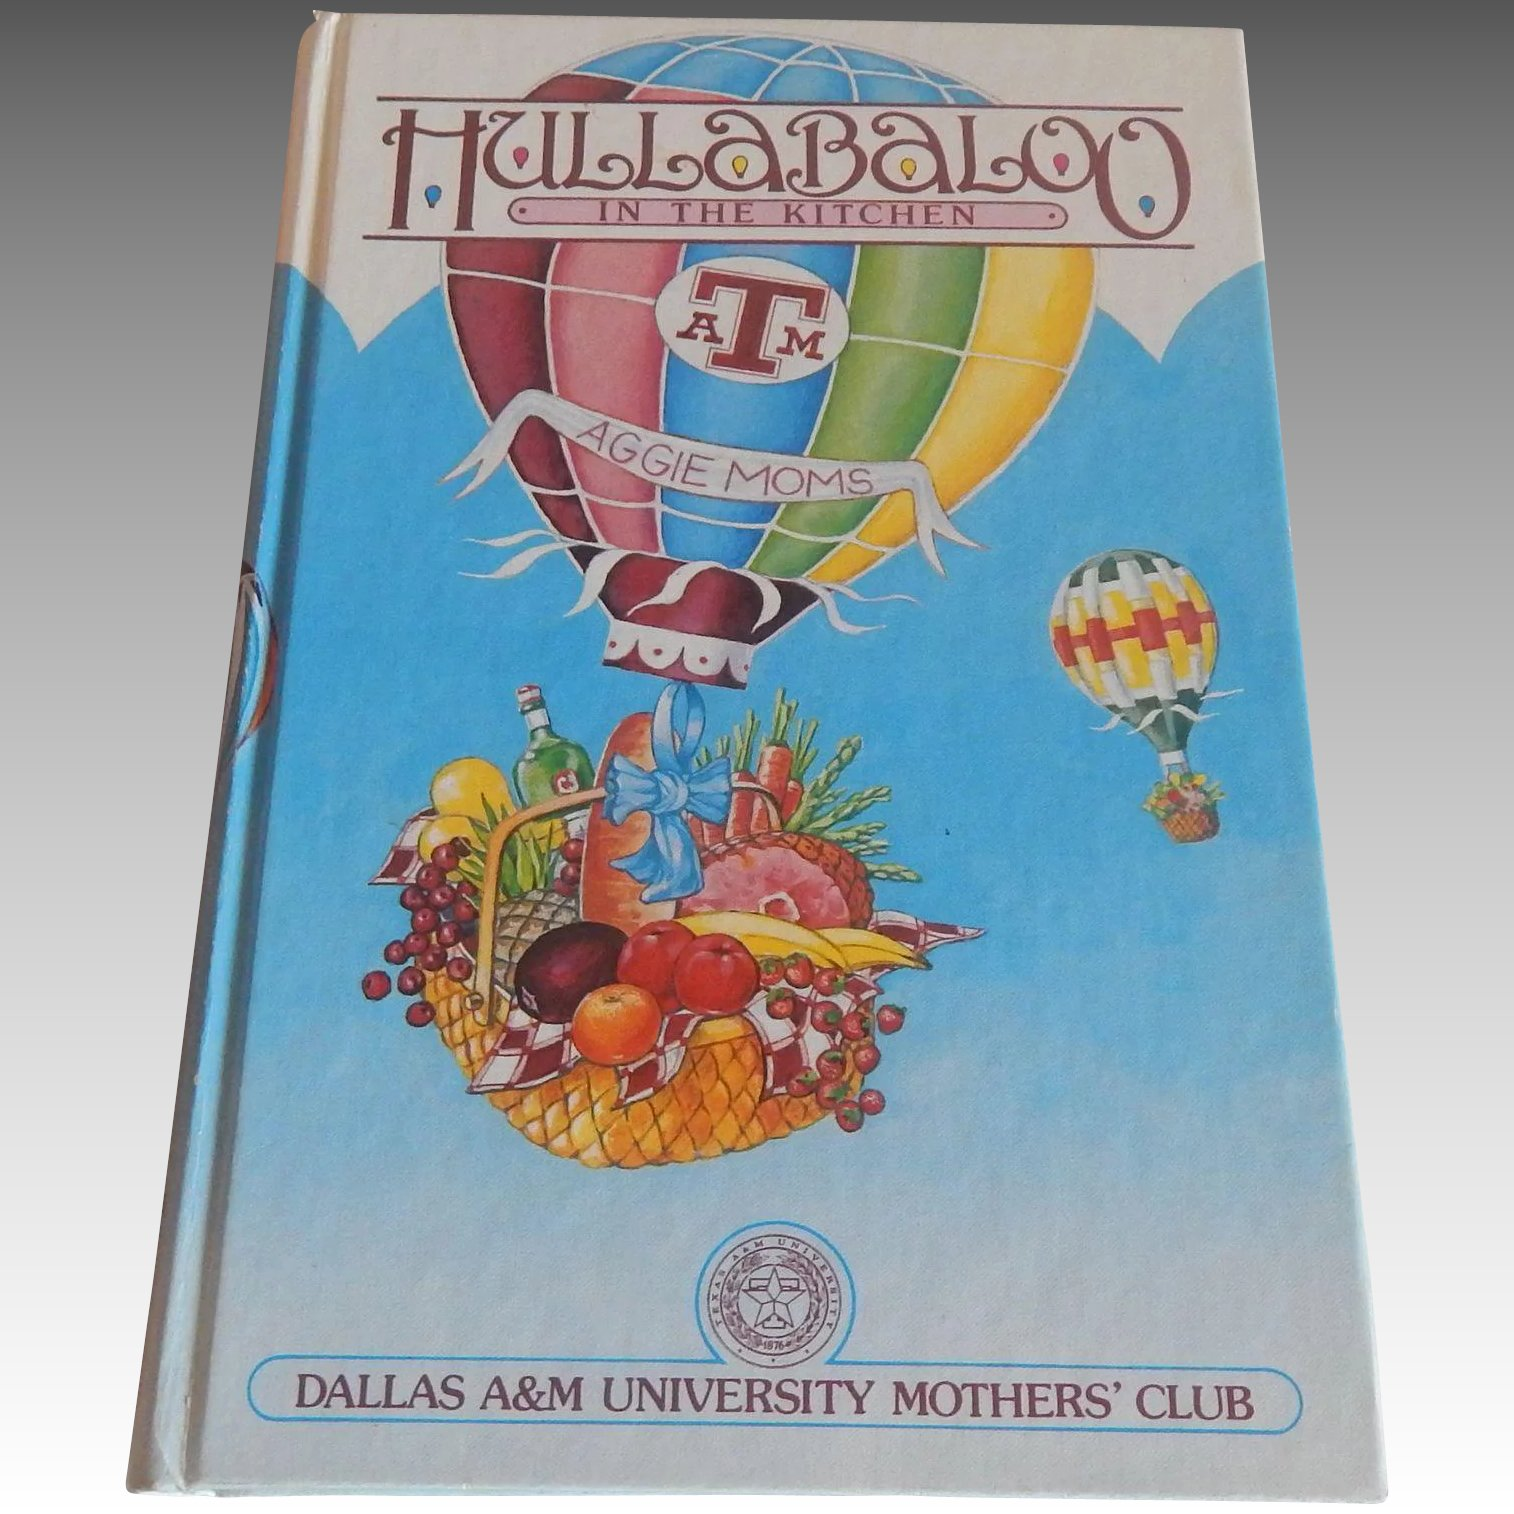 Hullabaloo In The Kitchen Cookbook Aggie Moms : Colemans ...